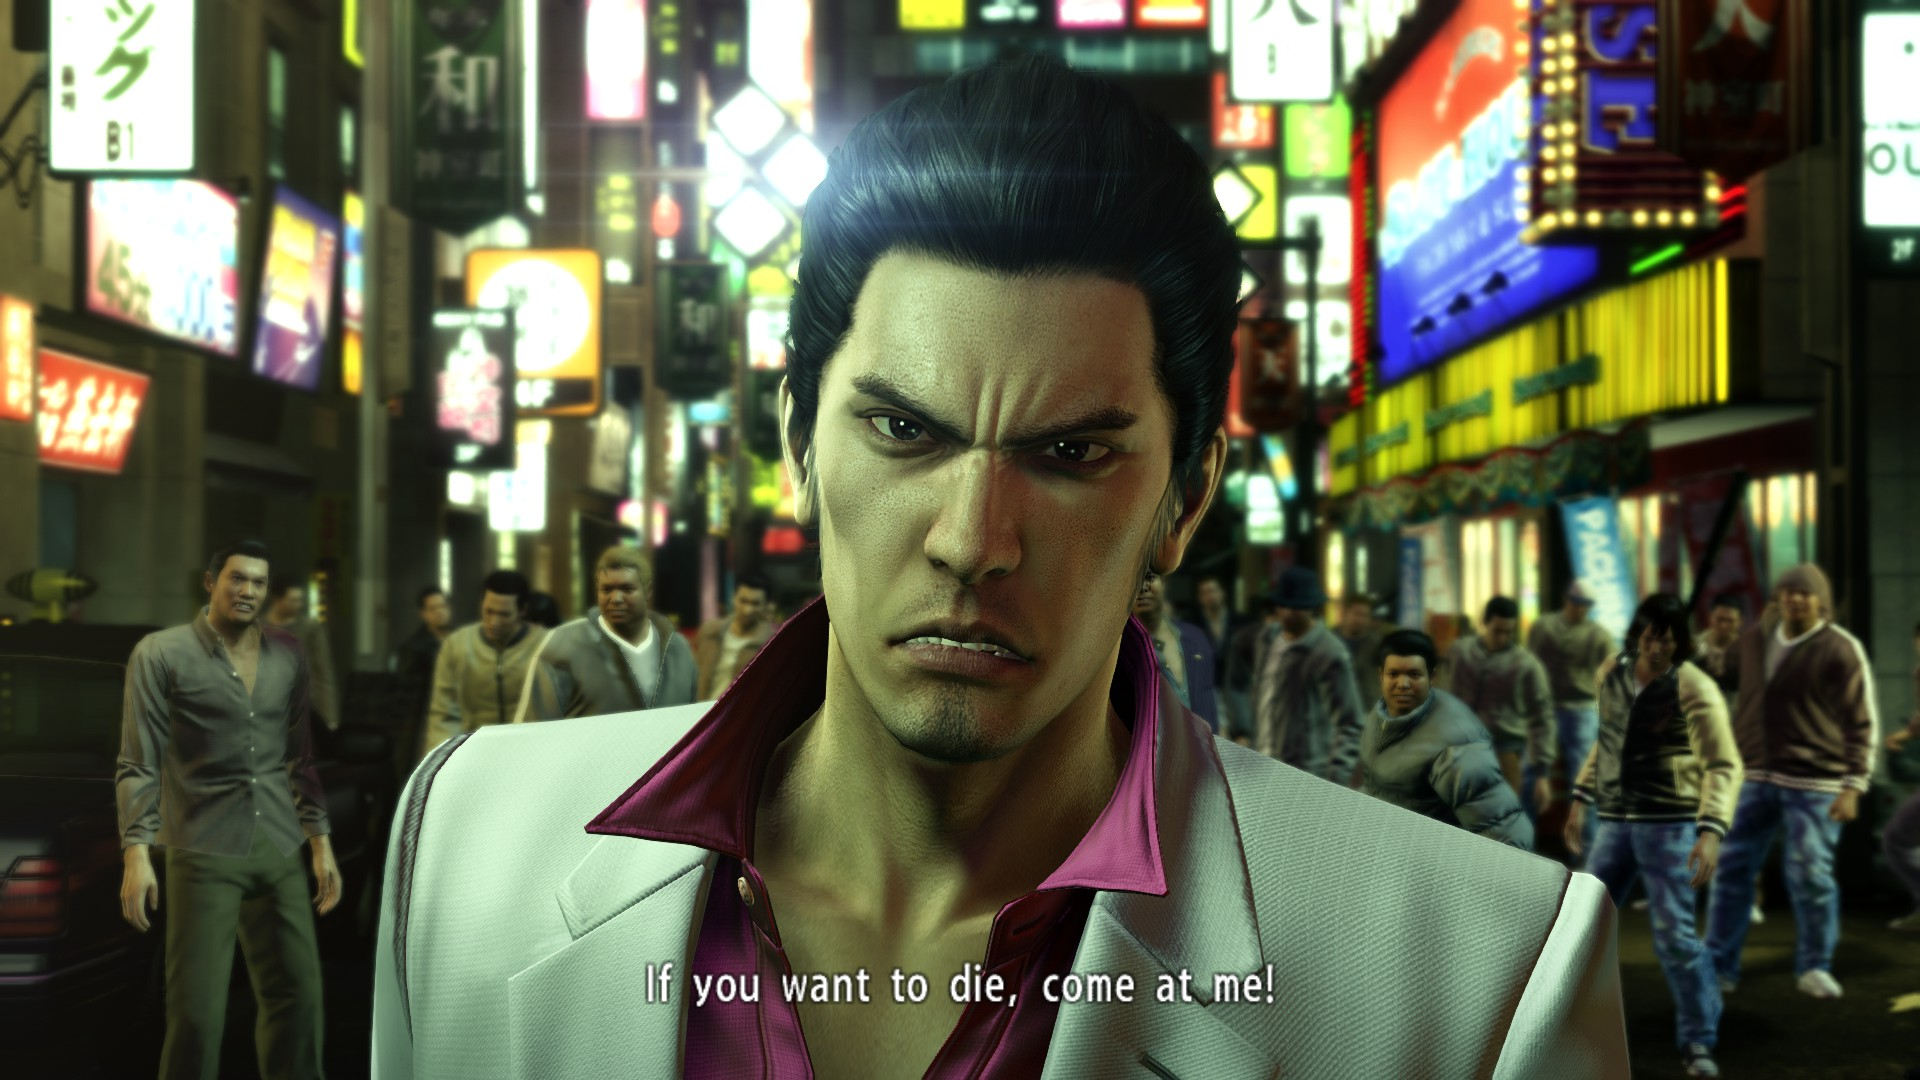 Yakuza Kiwami (PC) - The Dragon of Dojima is not to be messed with